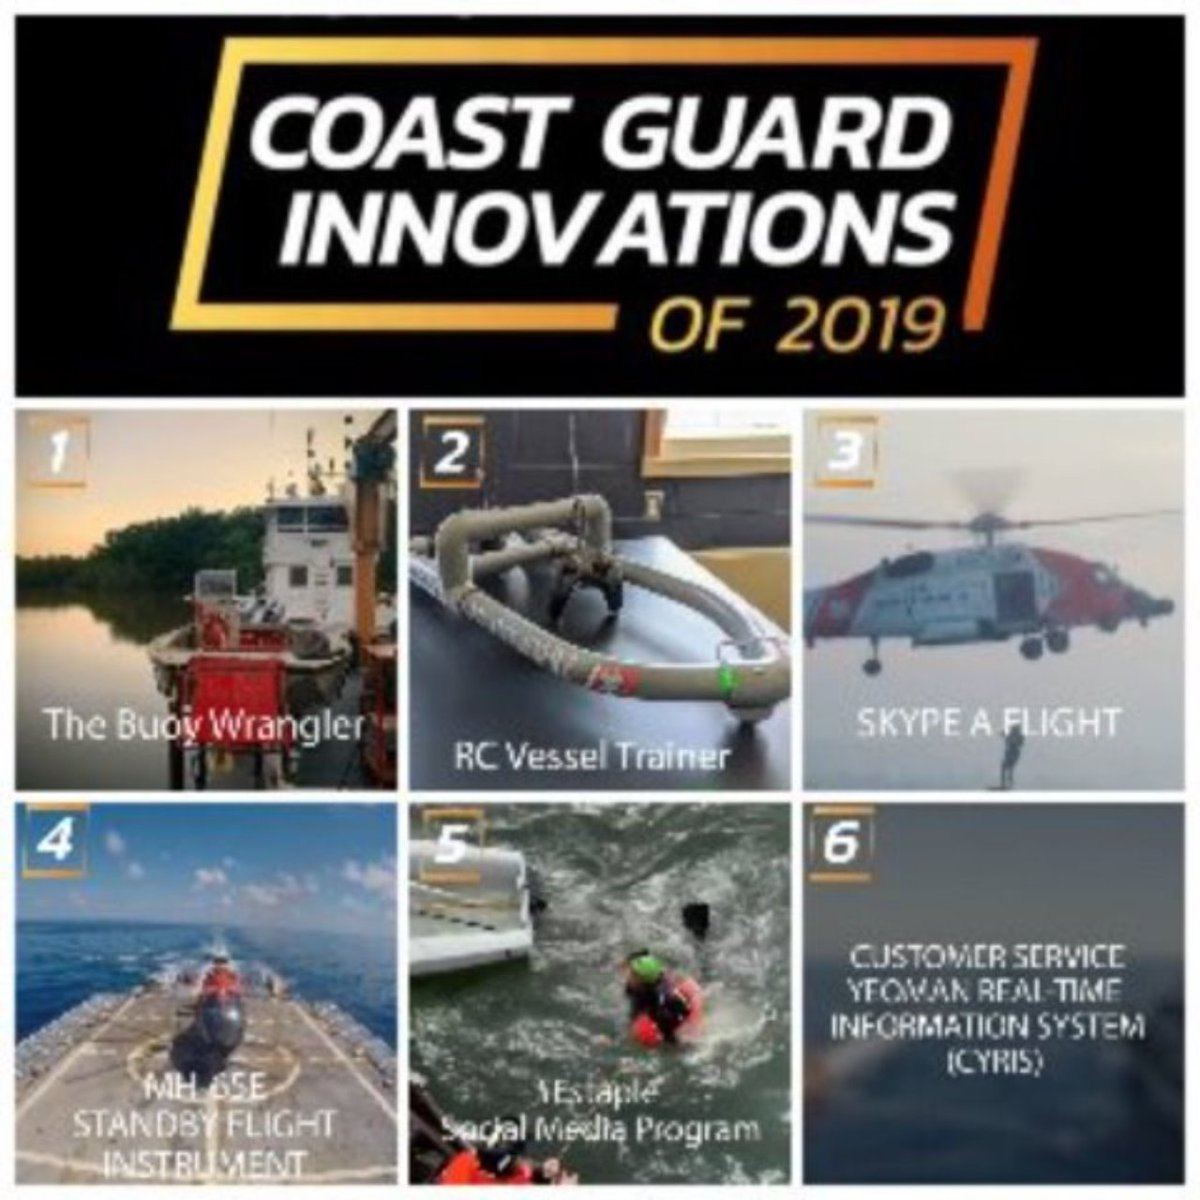 Congratulations to the 2019 recients of the Capt. Niels P. Thomsen Innovation Awards. To see these recipients achievements, follow U.S. Coast Guard Facebook Page facebook.com/UScoastguard/